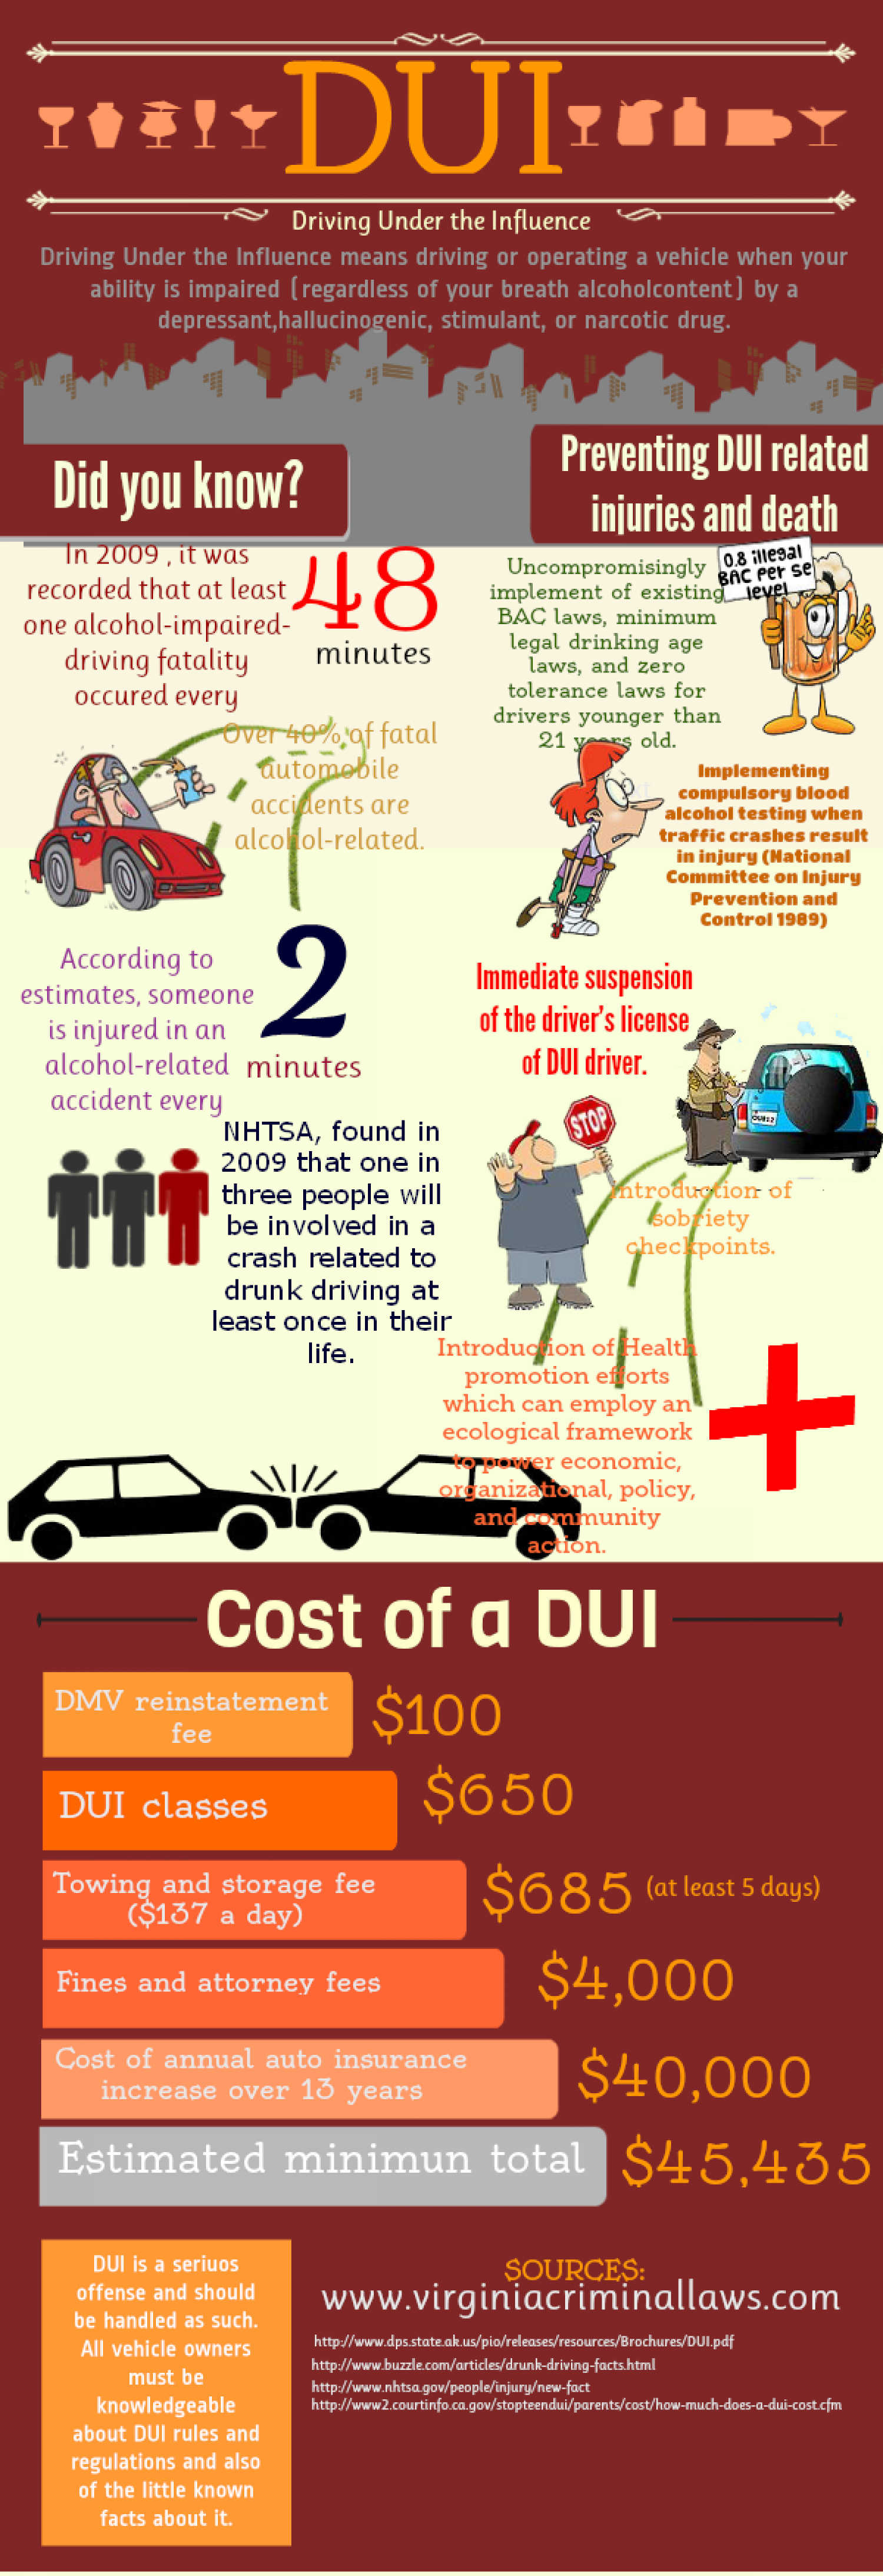 Cost of a DUI Infographic